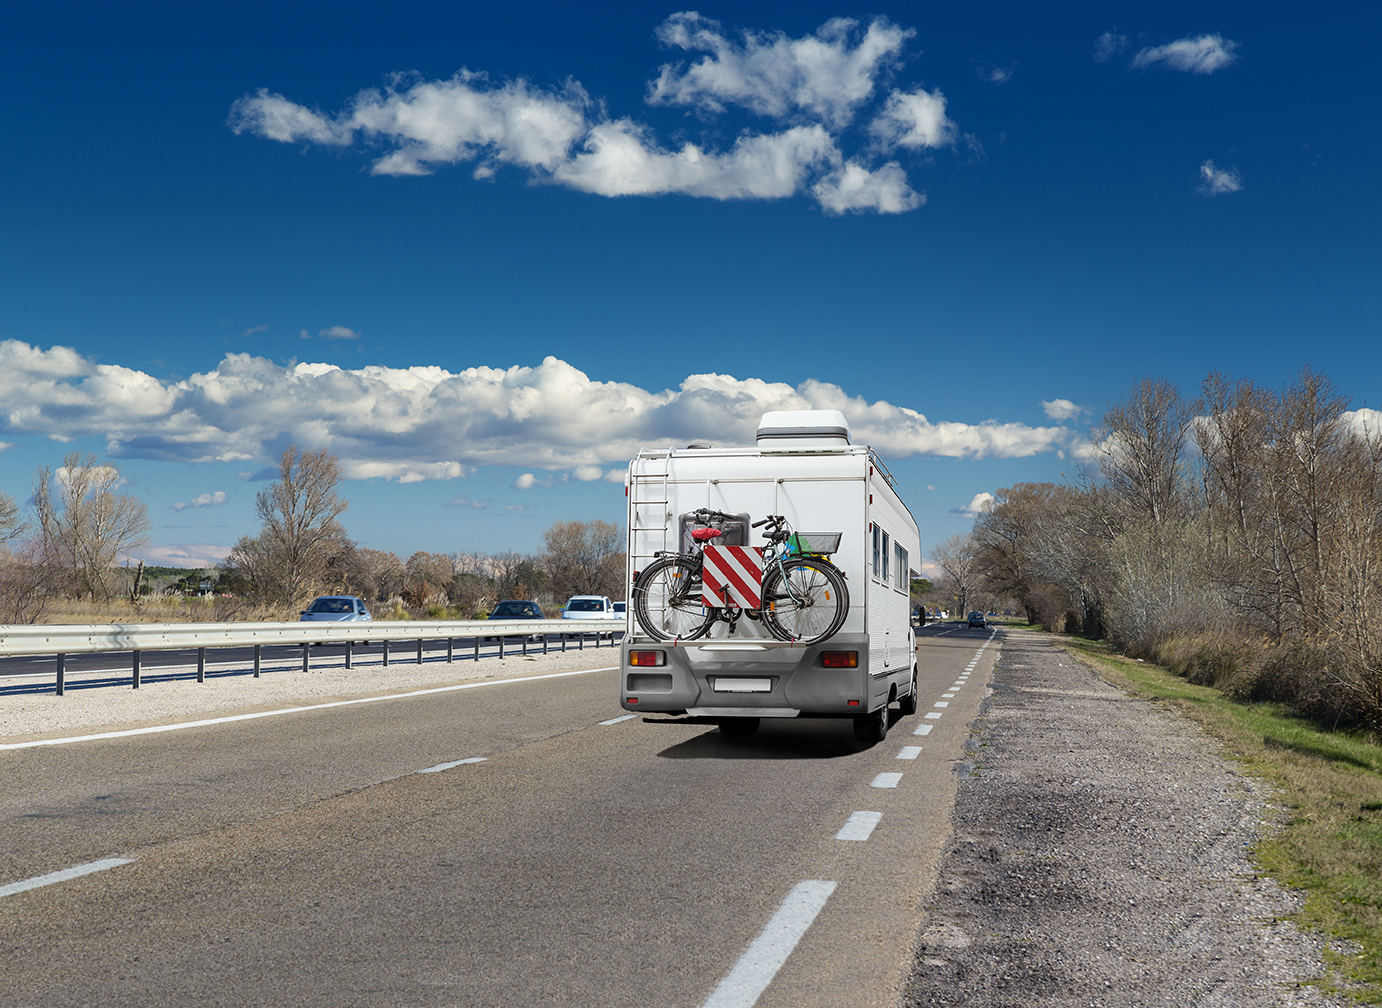 RV traveling to campground on 4-lane highway